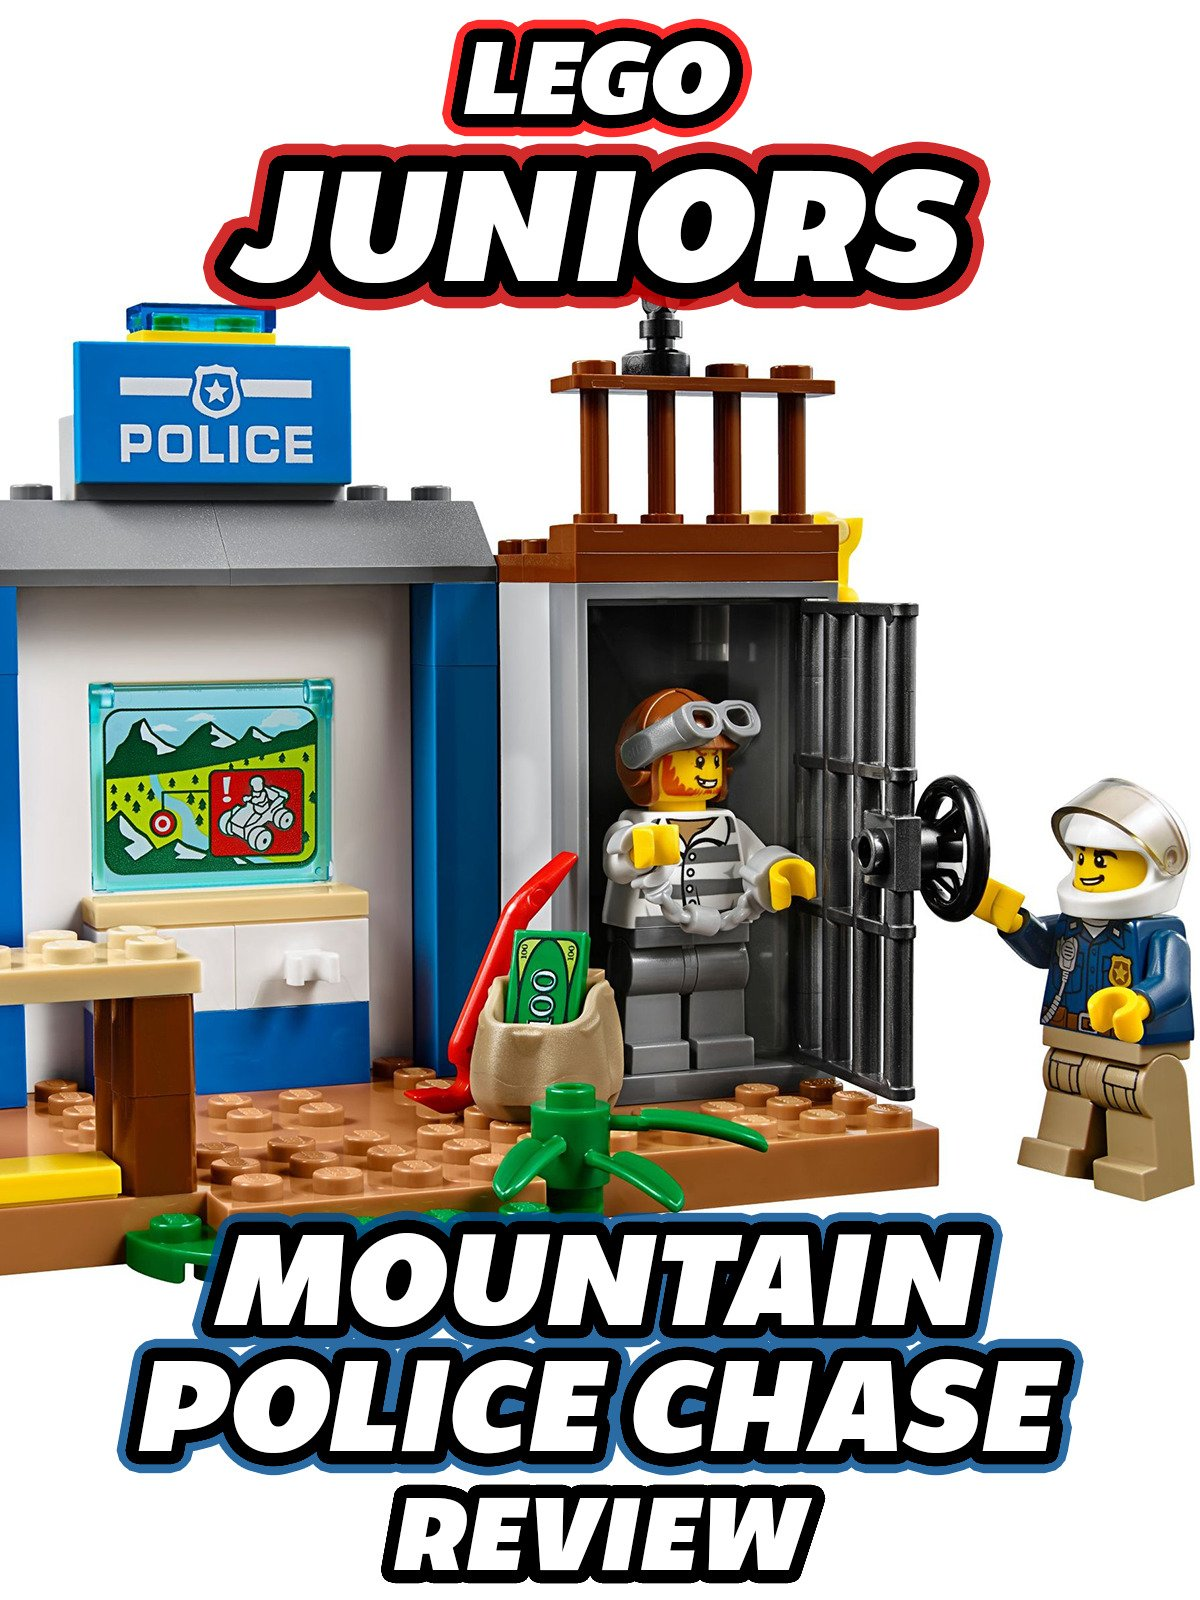 Review: Lego City Mountain Police Chase Review